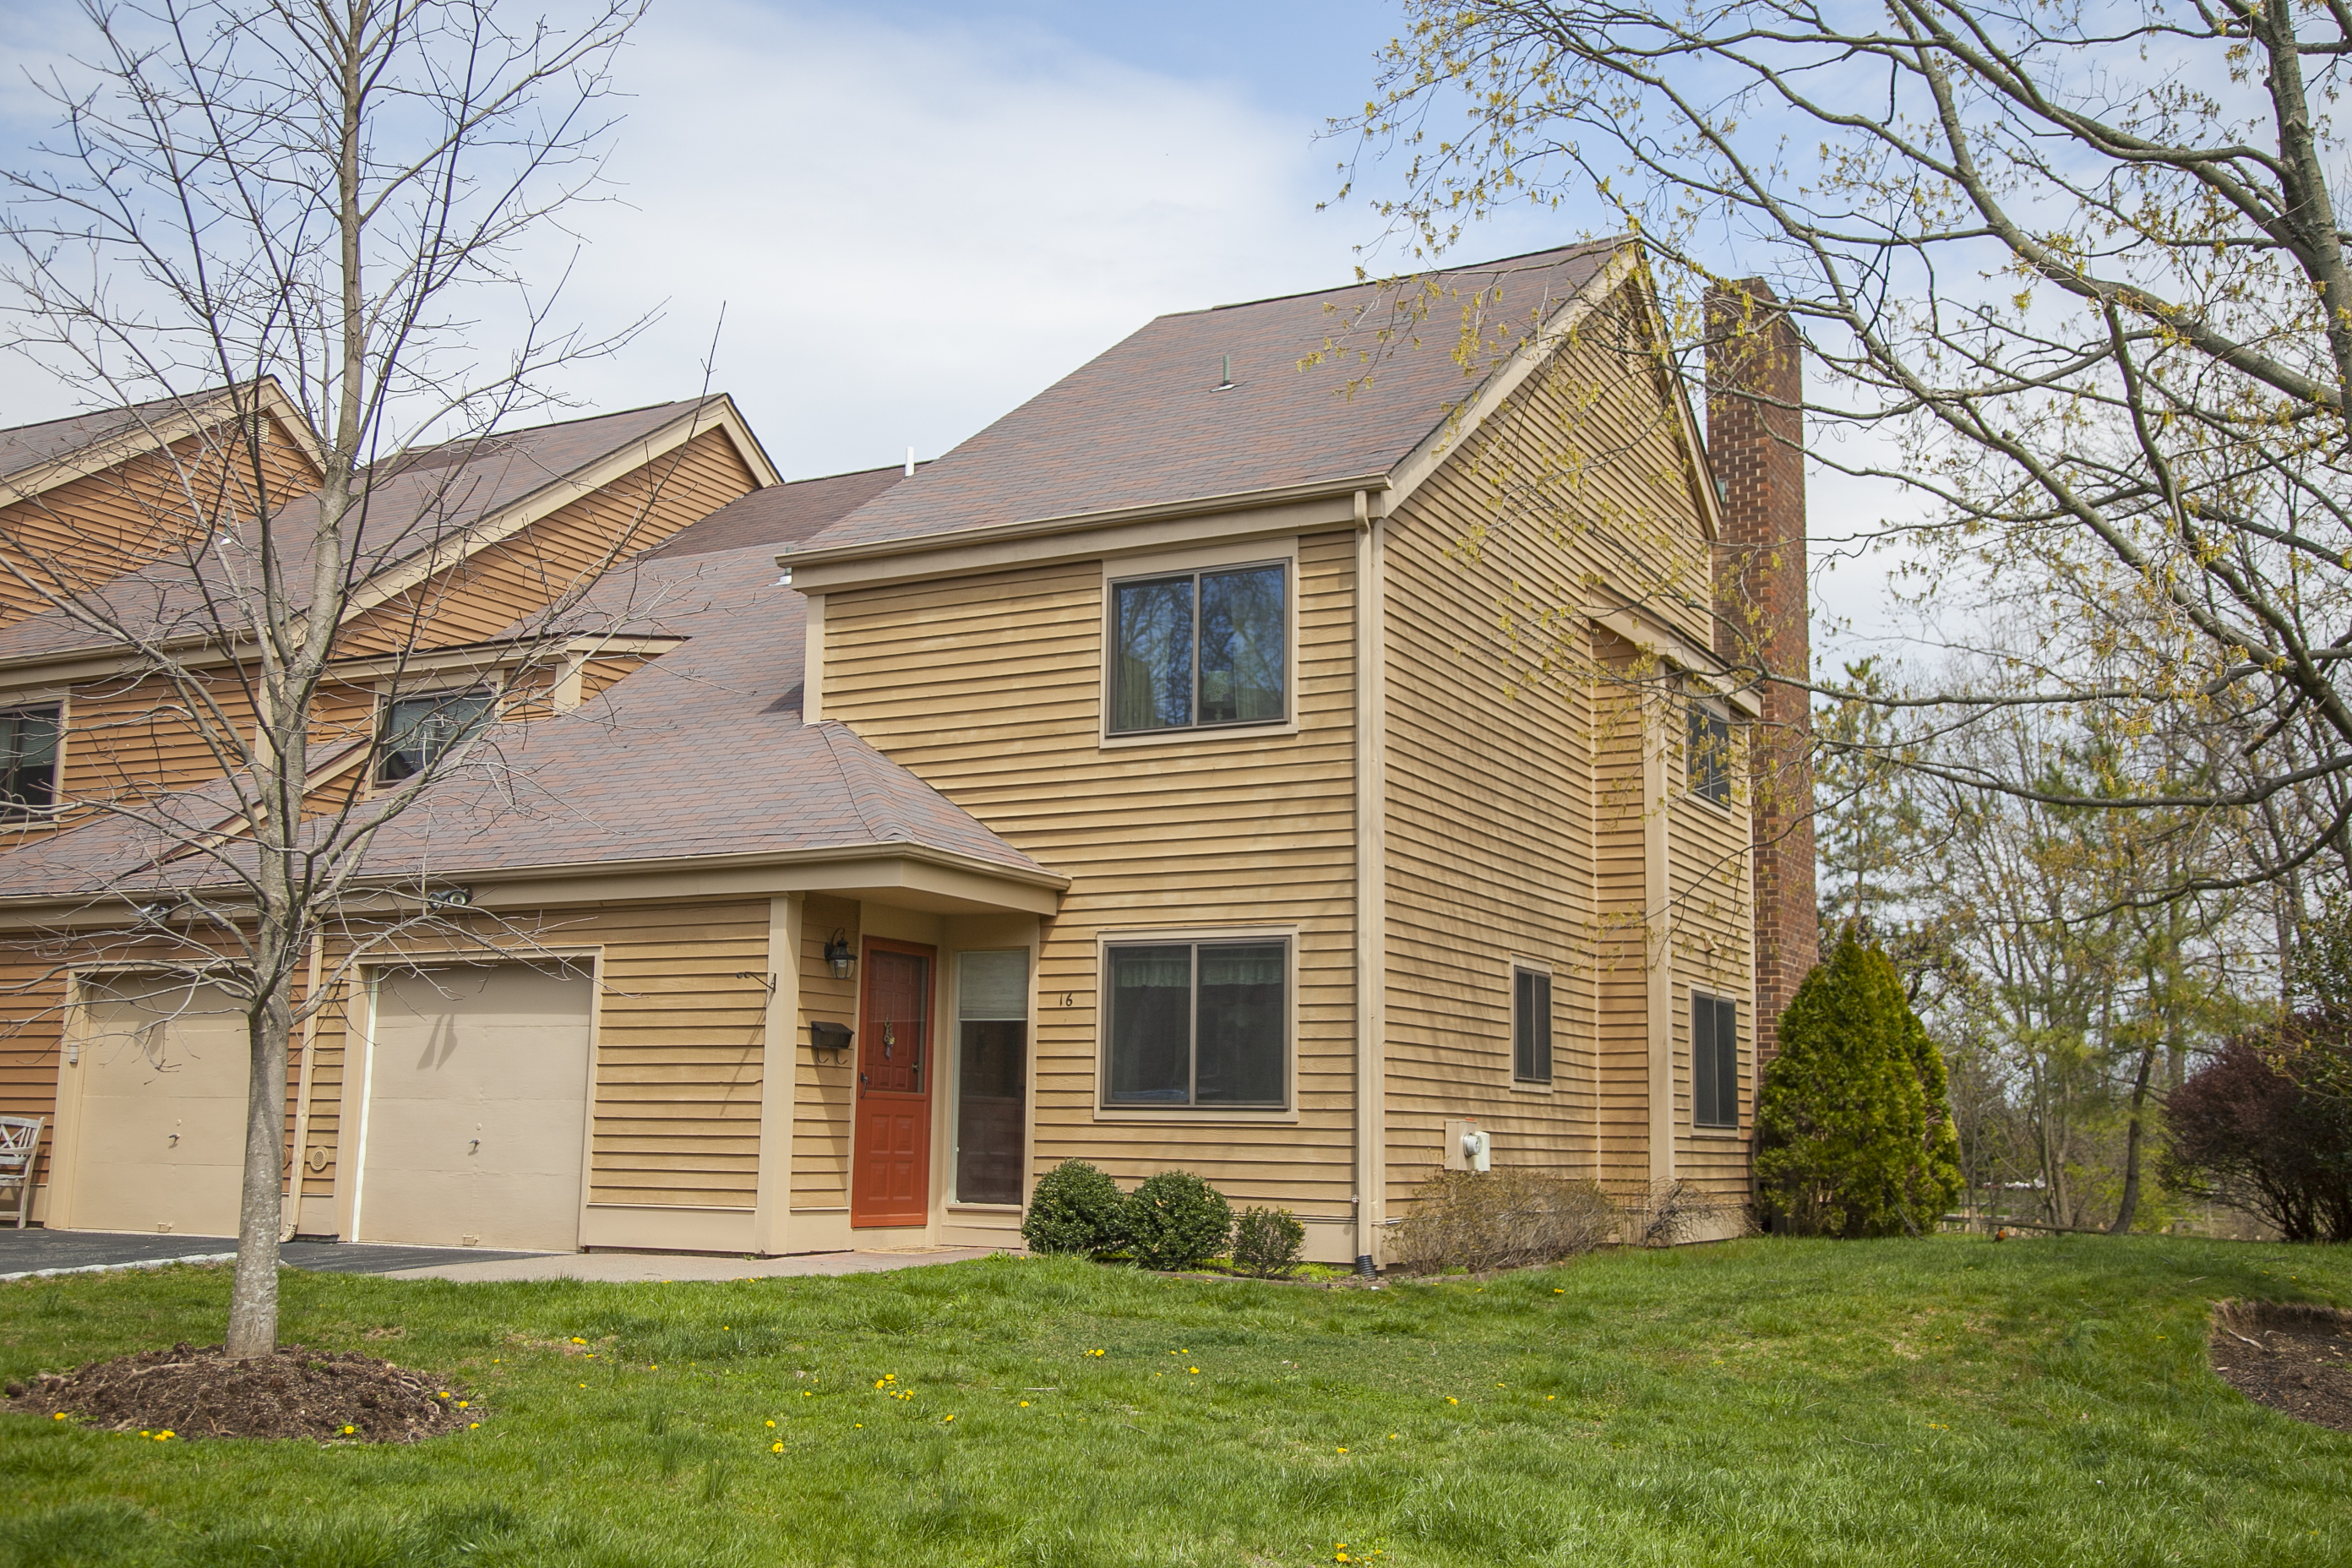 Townhouse for Sale at 16 Bayberry Lane Rye Brook, New York, 10573 United States